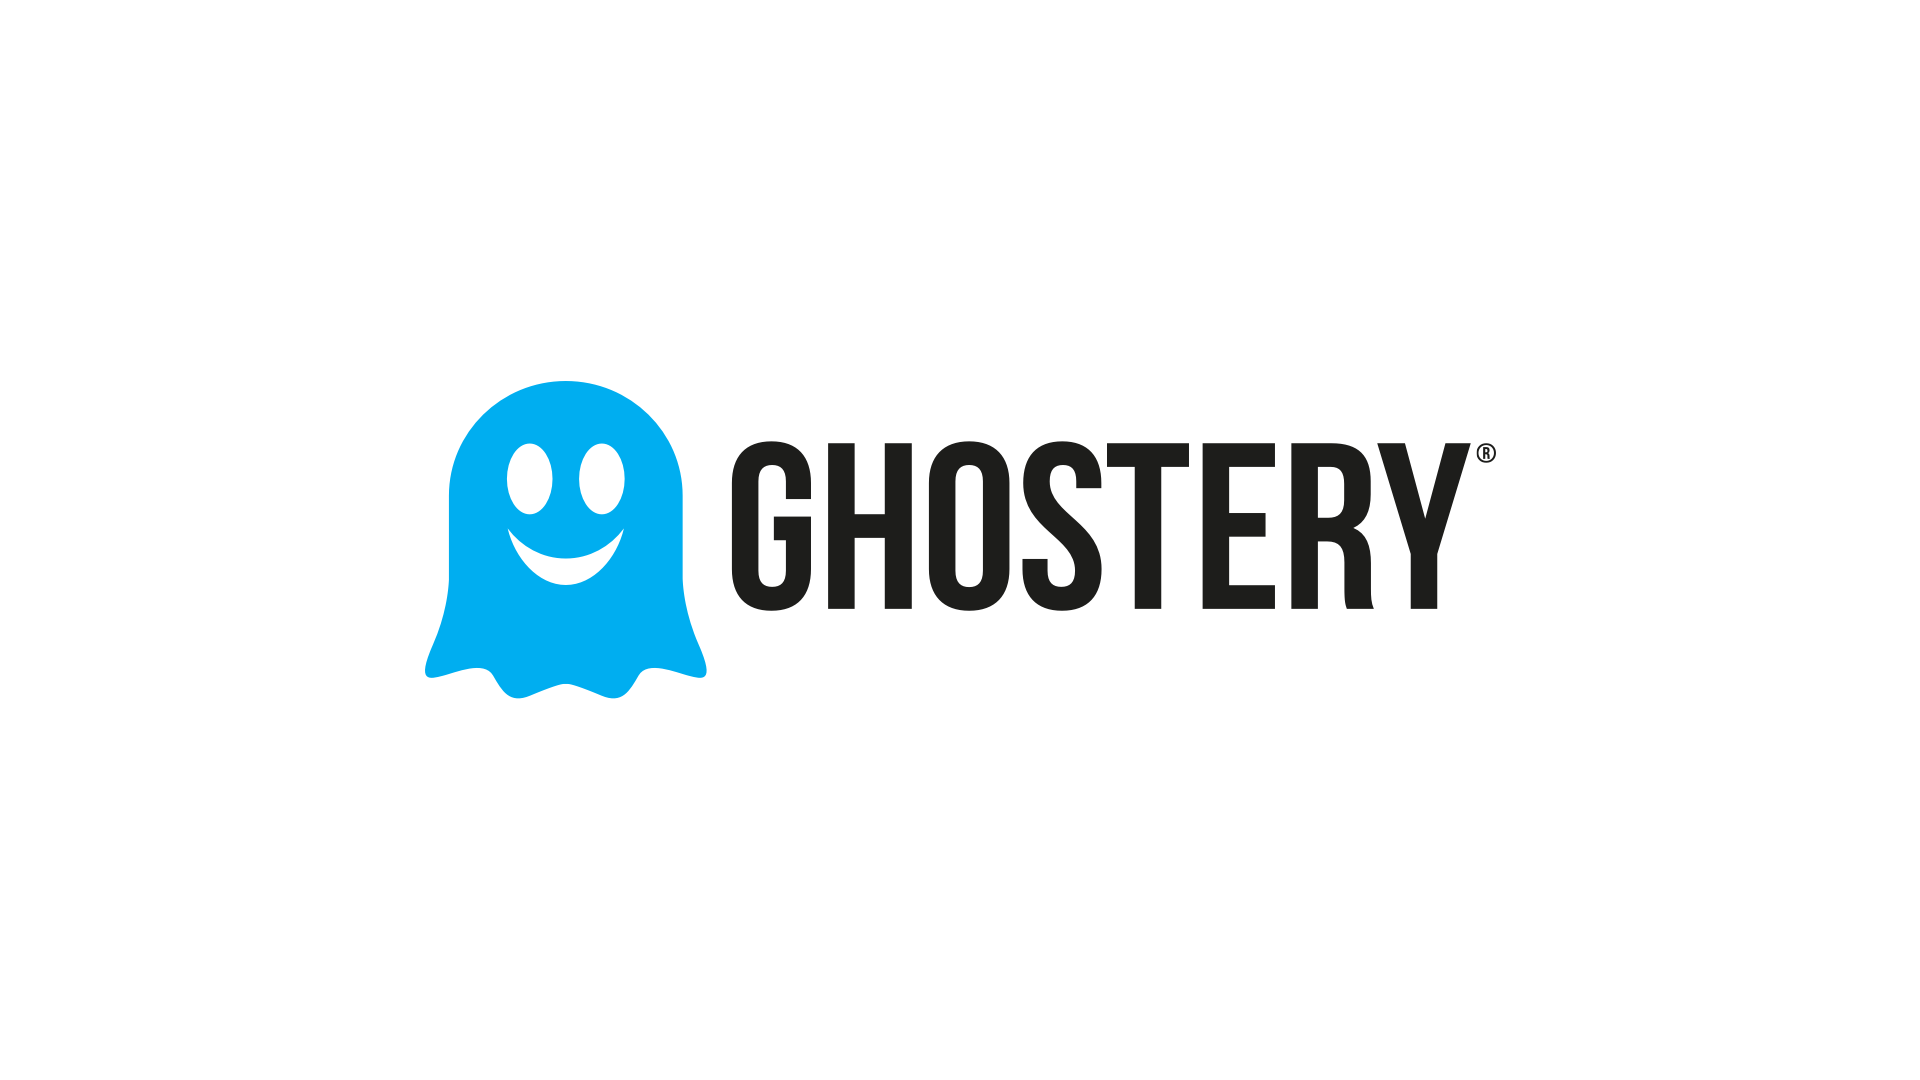 How We at Ghostery Protect Users from Web Tracking